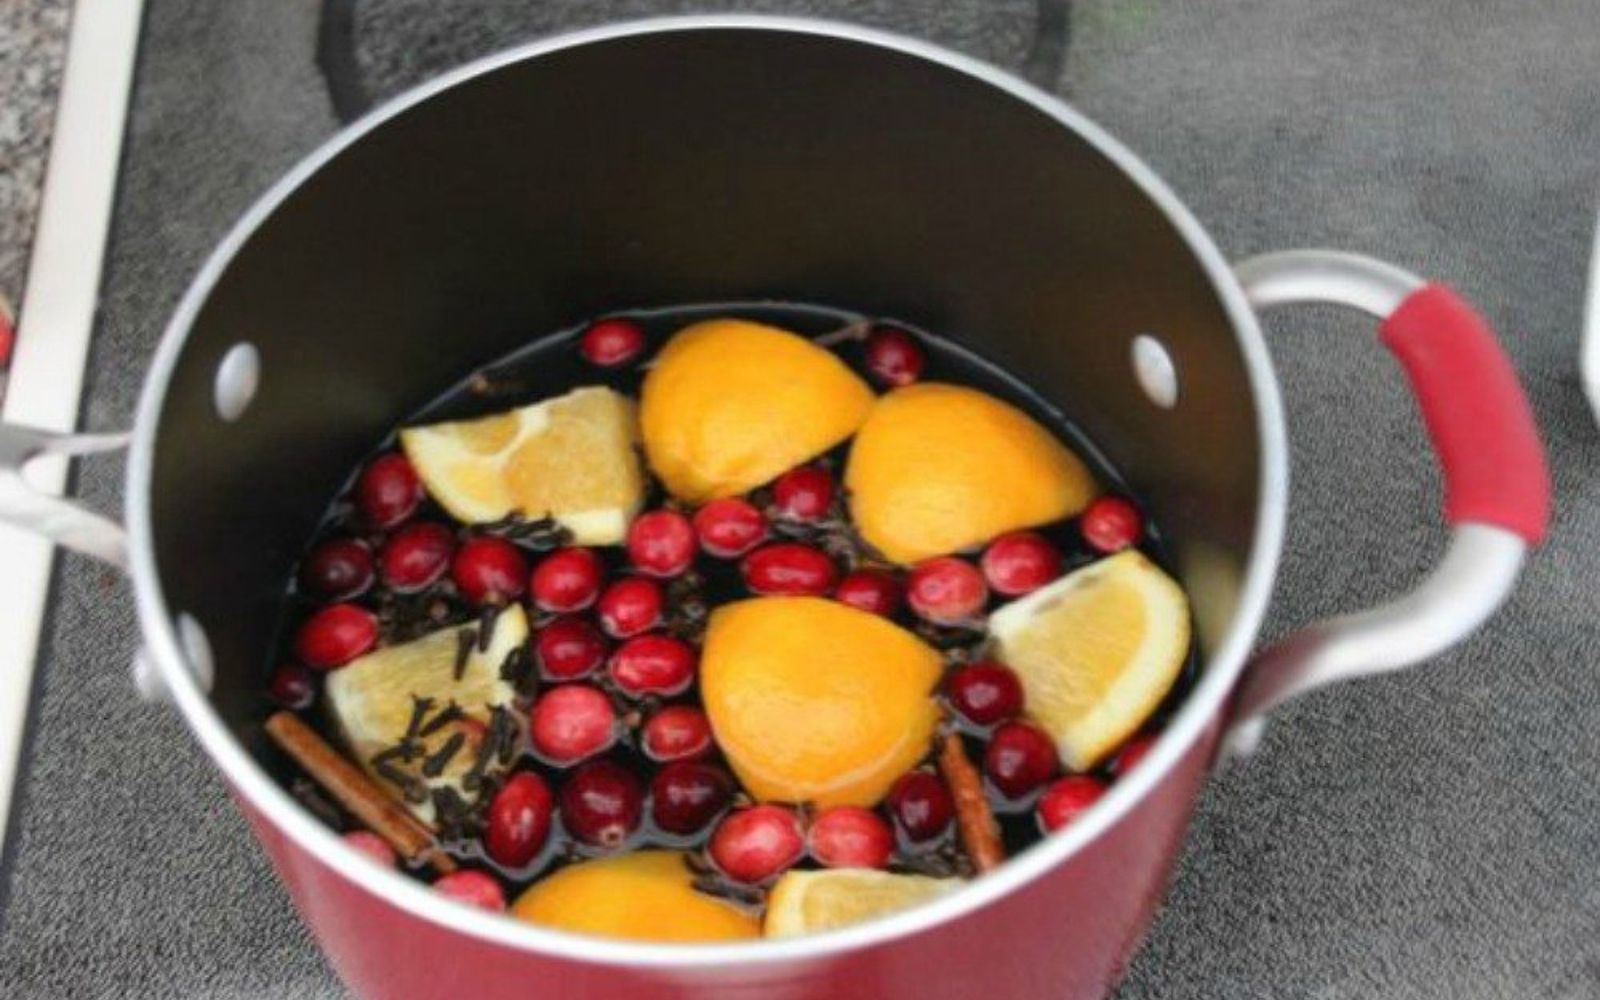 s make your home smell amazing with these diy winter scent ideas, home decor, This cranberries and orange fragrance